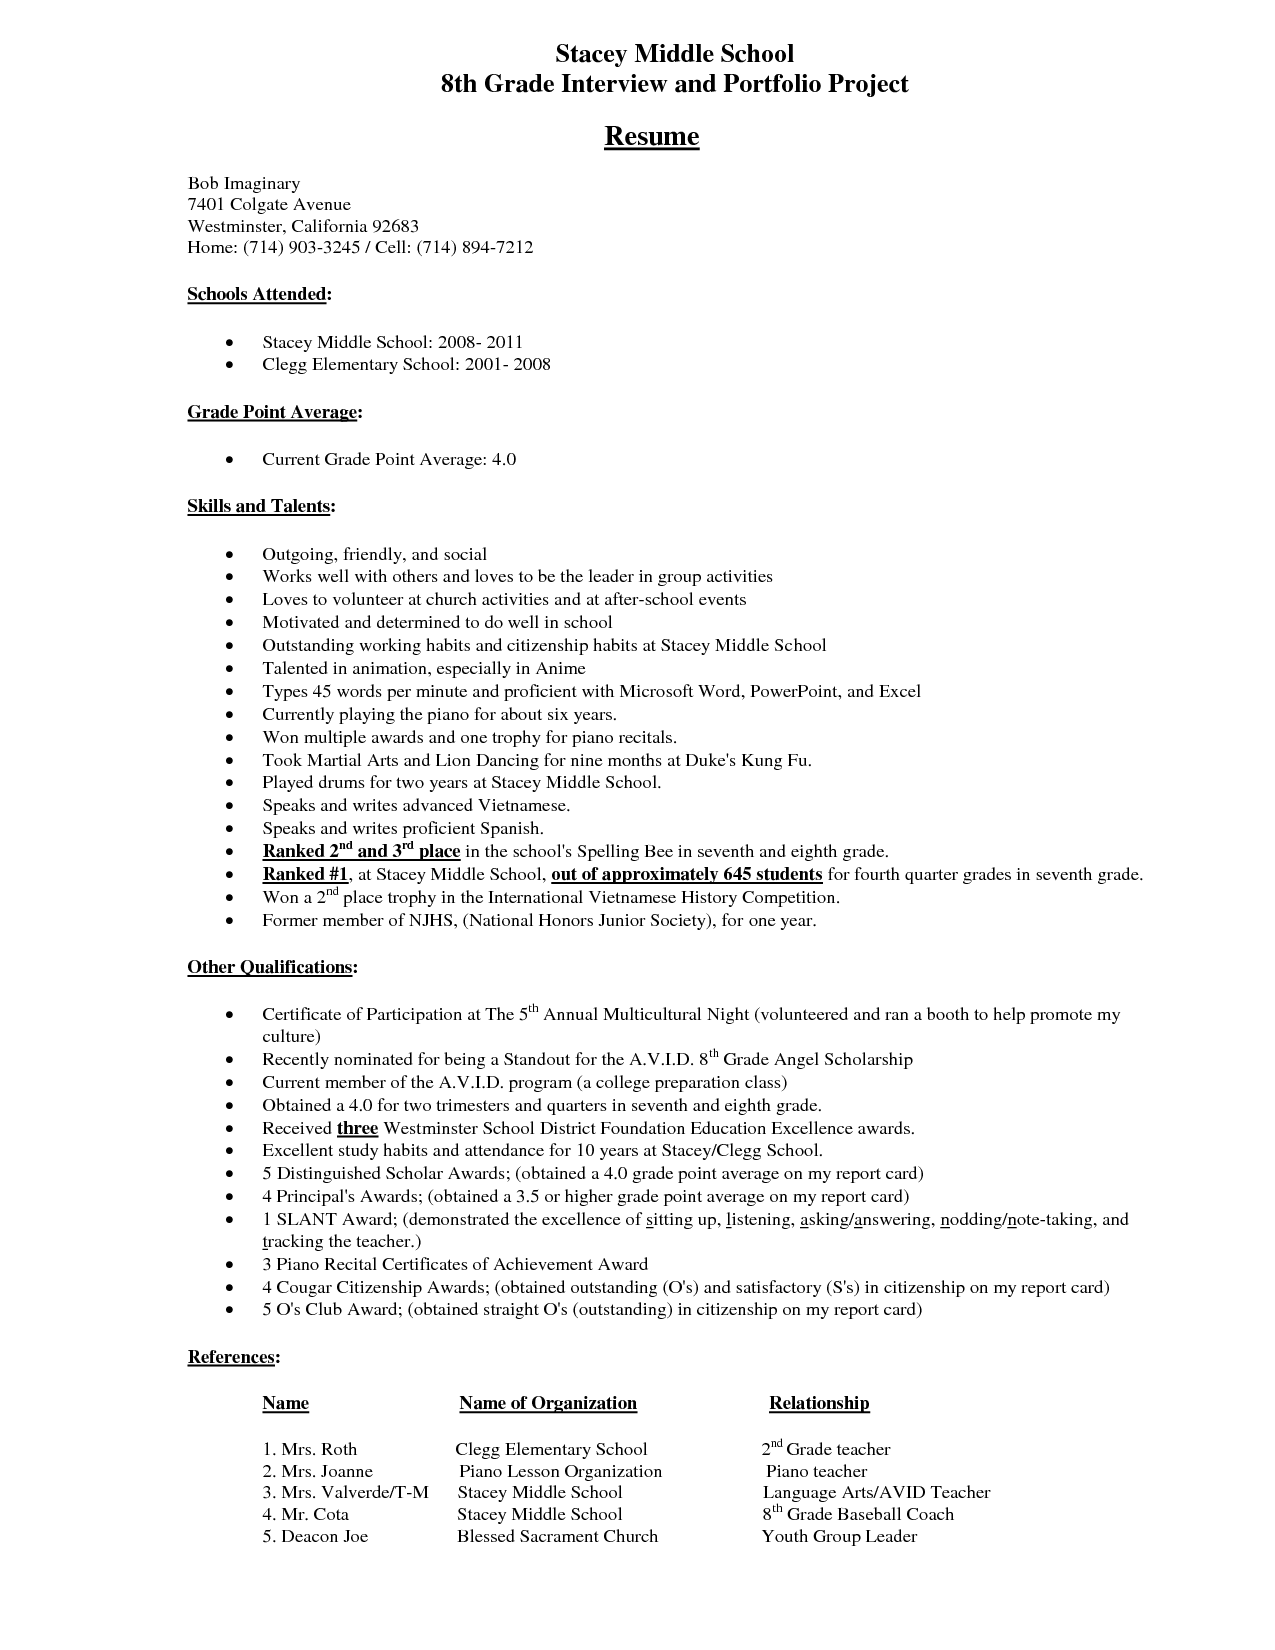 middle school student resume example stacey middle school 8th